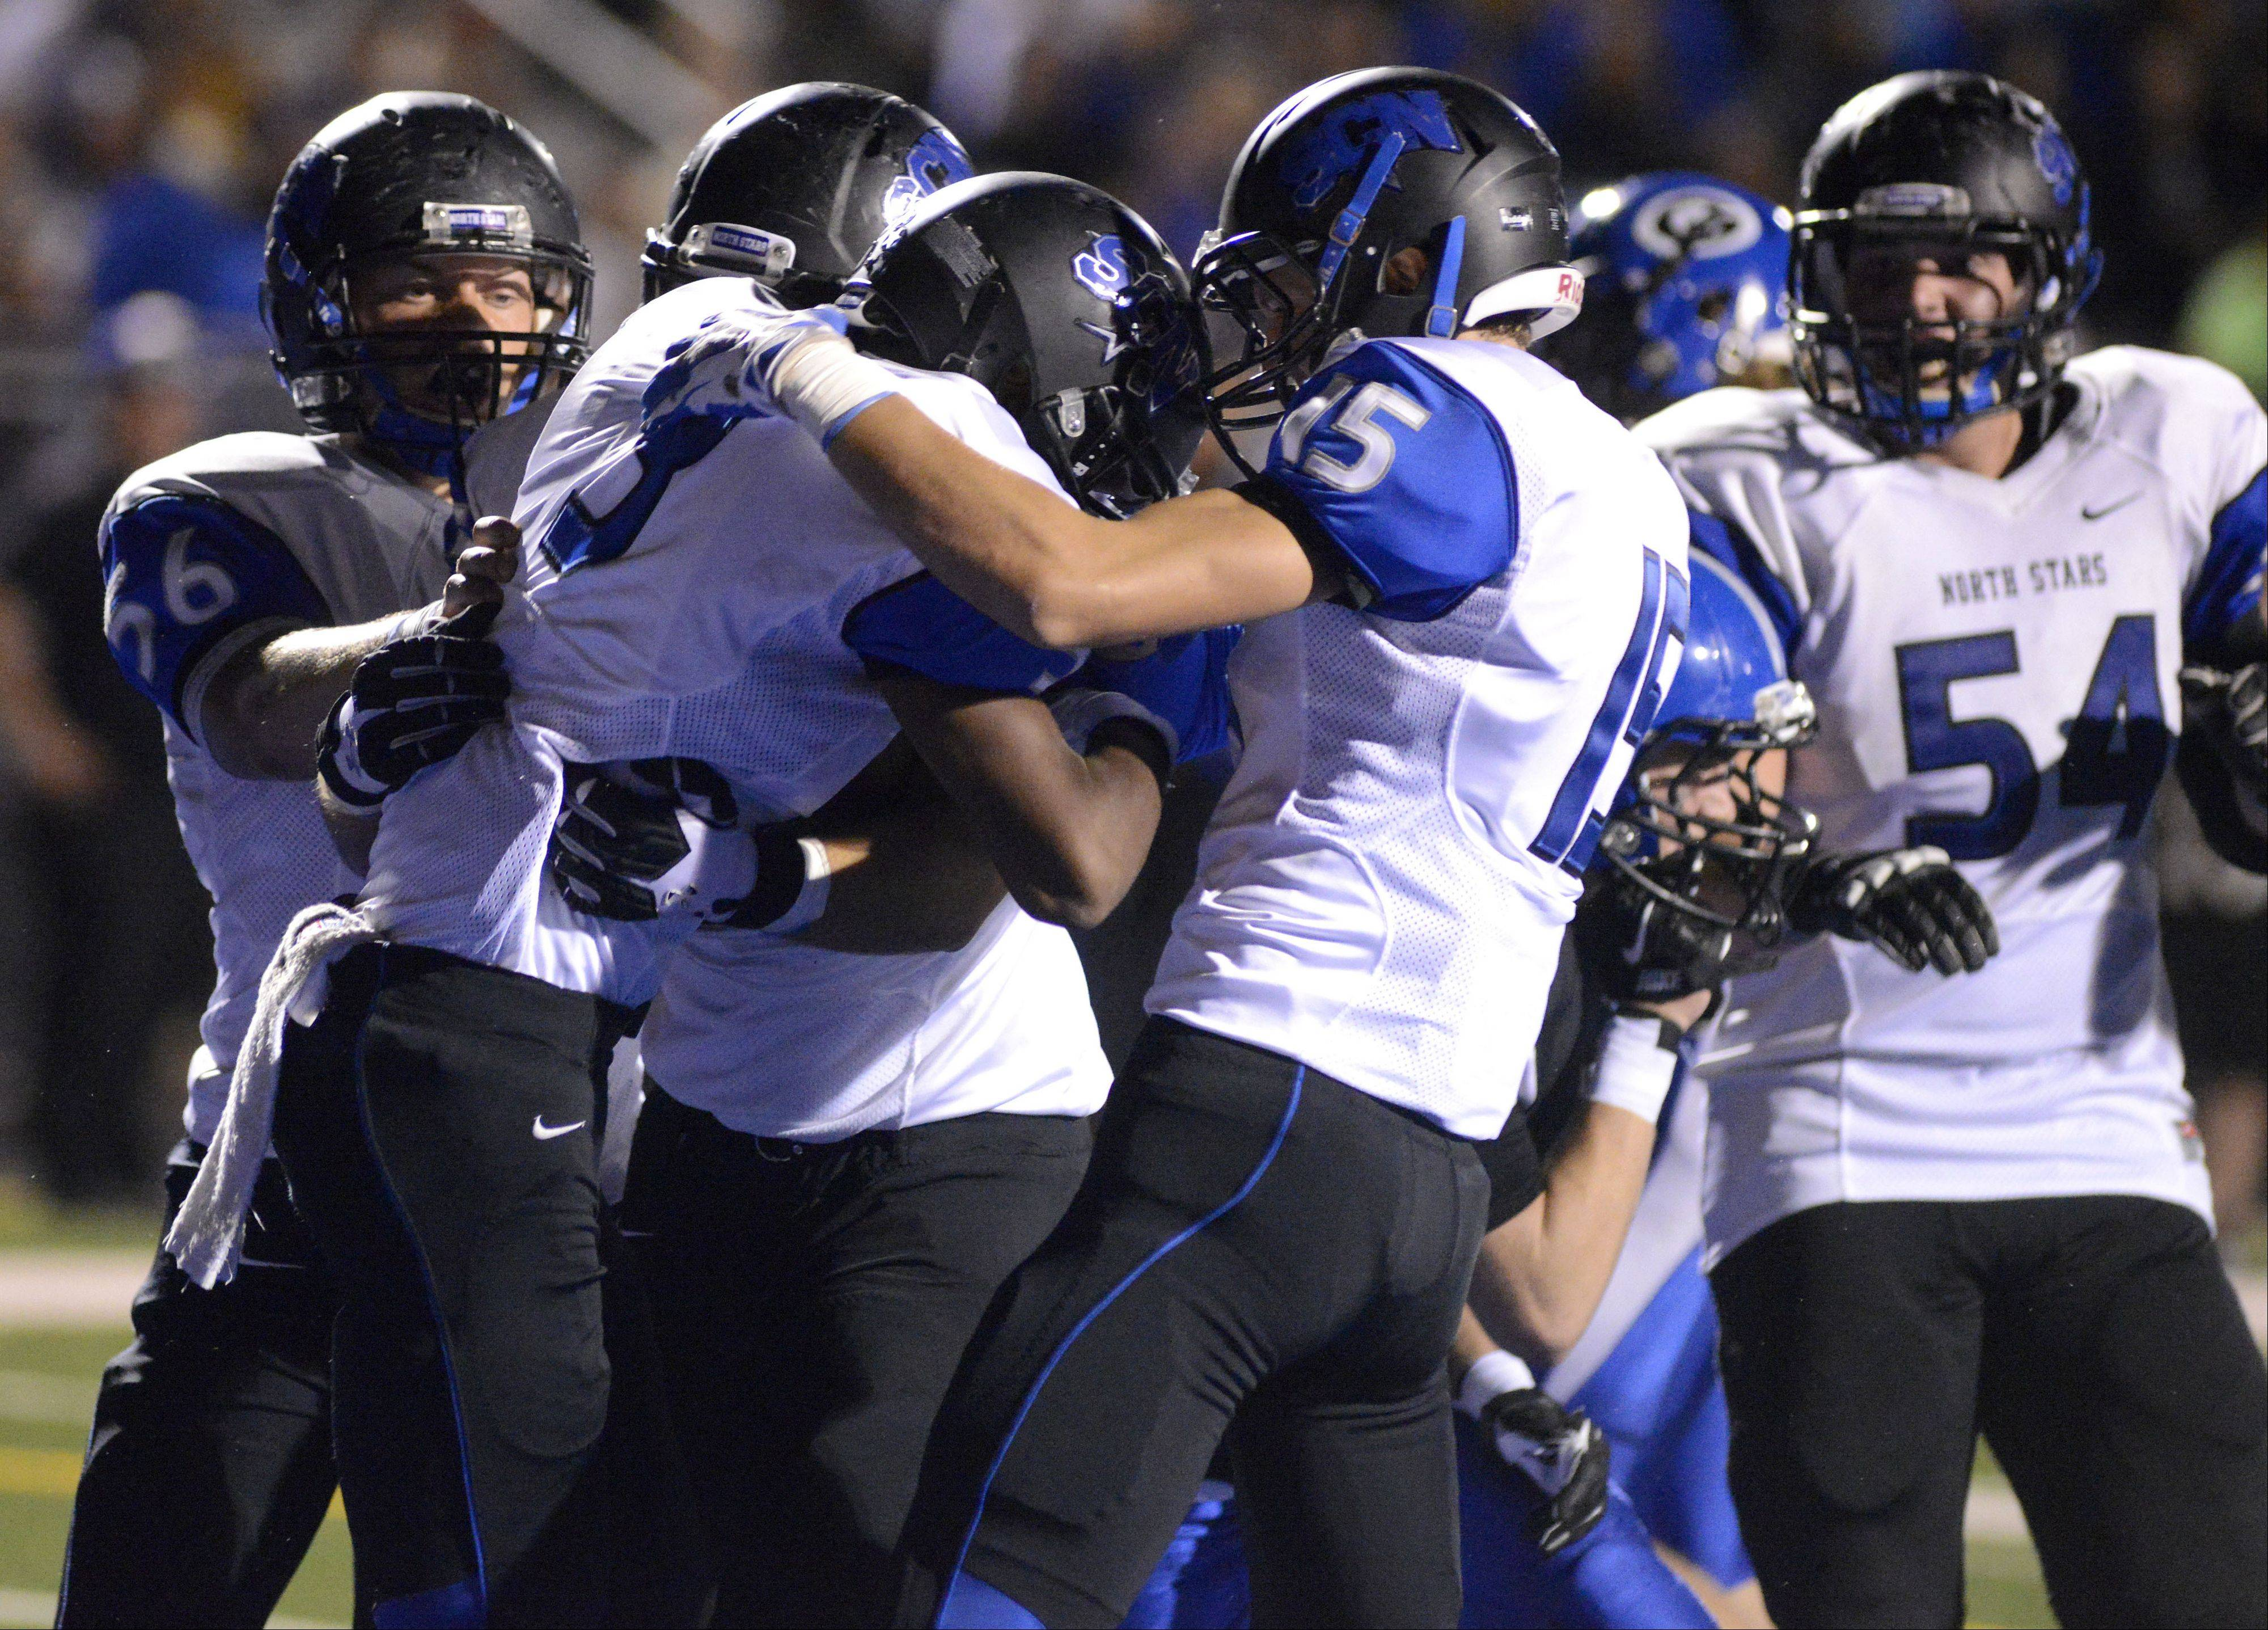 St. Charles North's Jon Merriwether is congratulated by teammates after scoring a touchdown at the start of the third quarter.